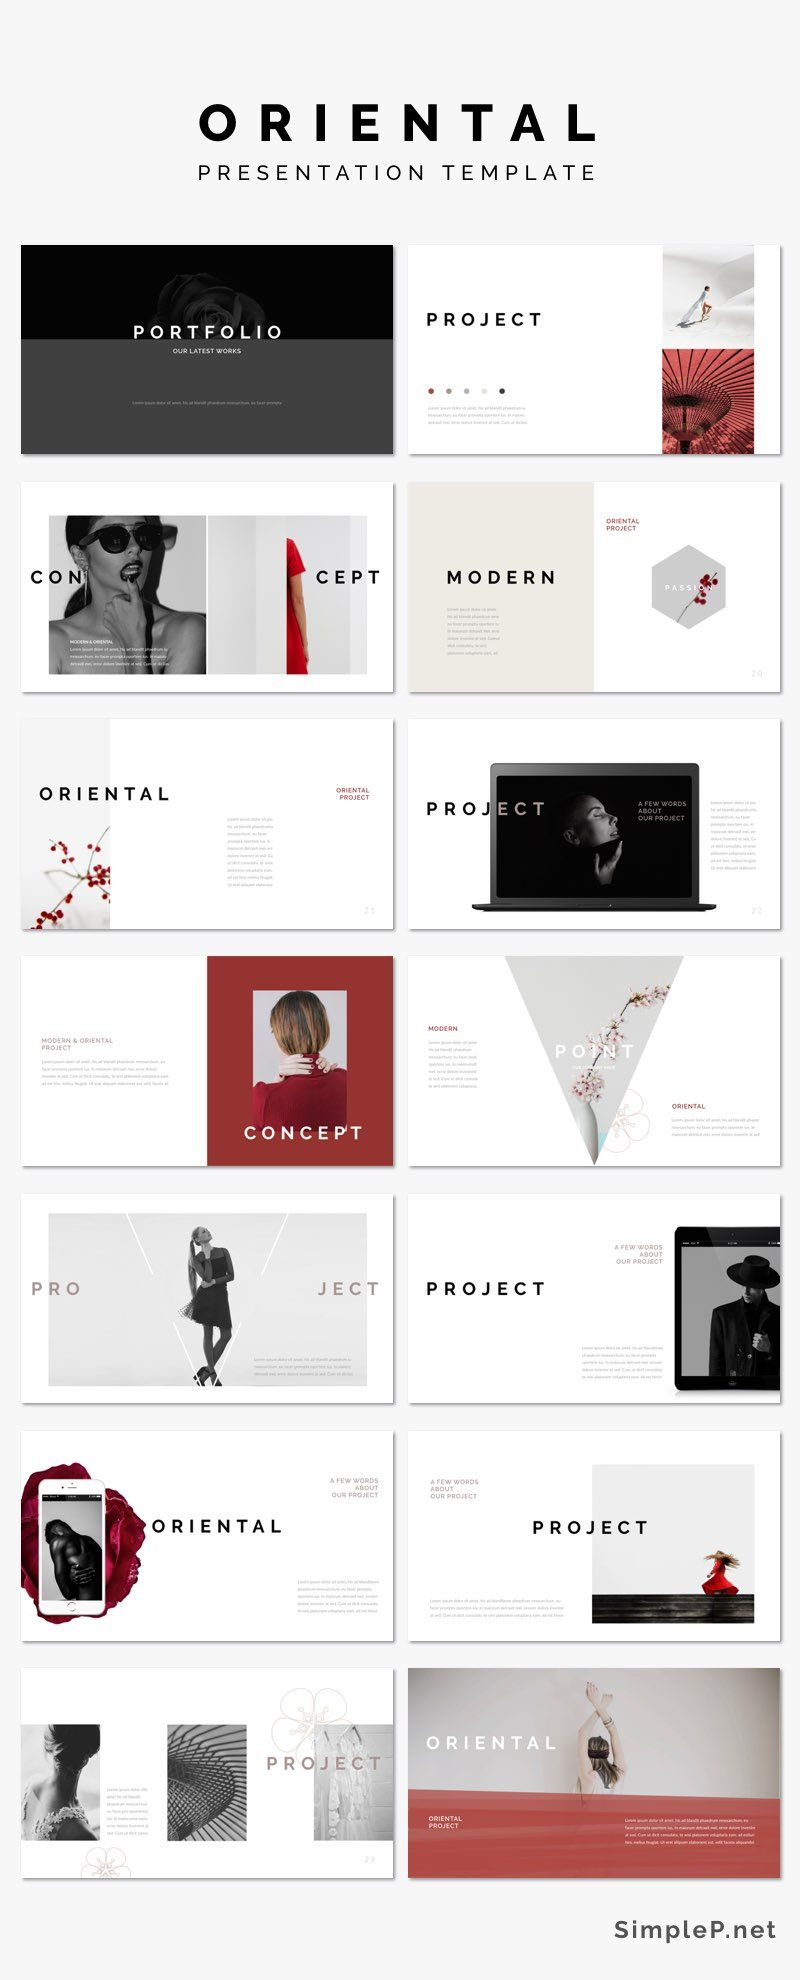 Oriental powerpoint template powerpoint presentation templates oriental powerpoint presentation template minimalist oriental red cherryblossoms spring flower toneelgroepblik Image collections